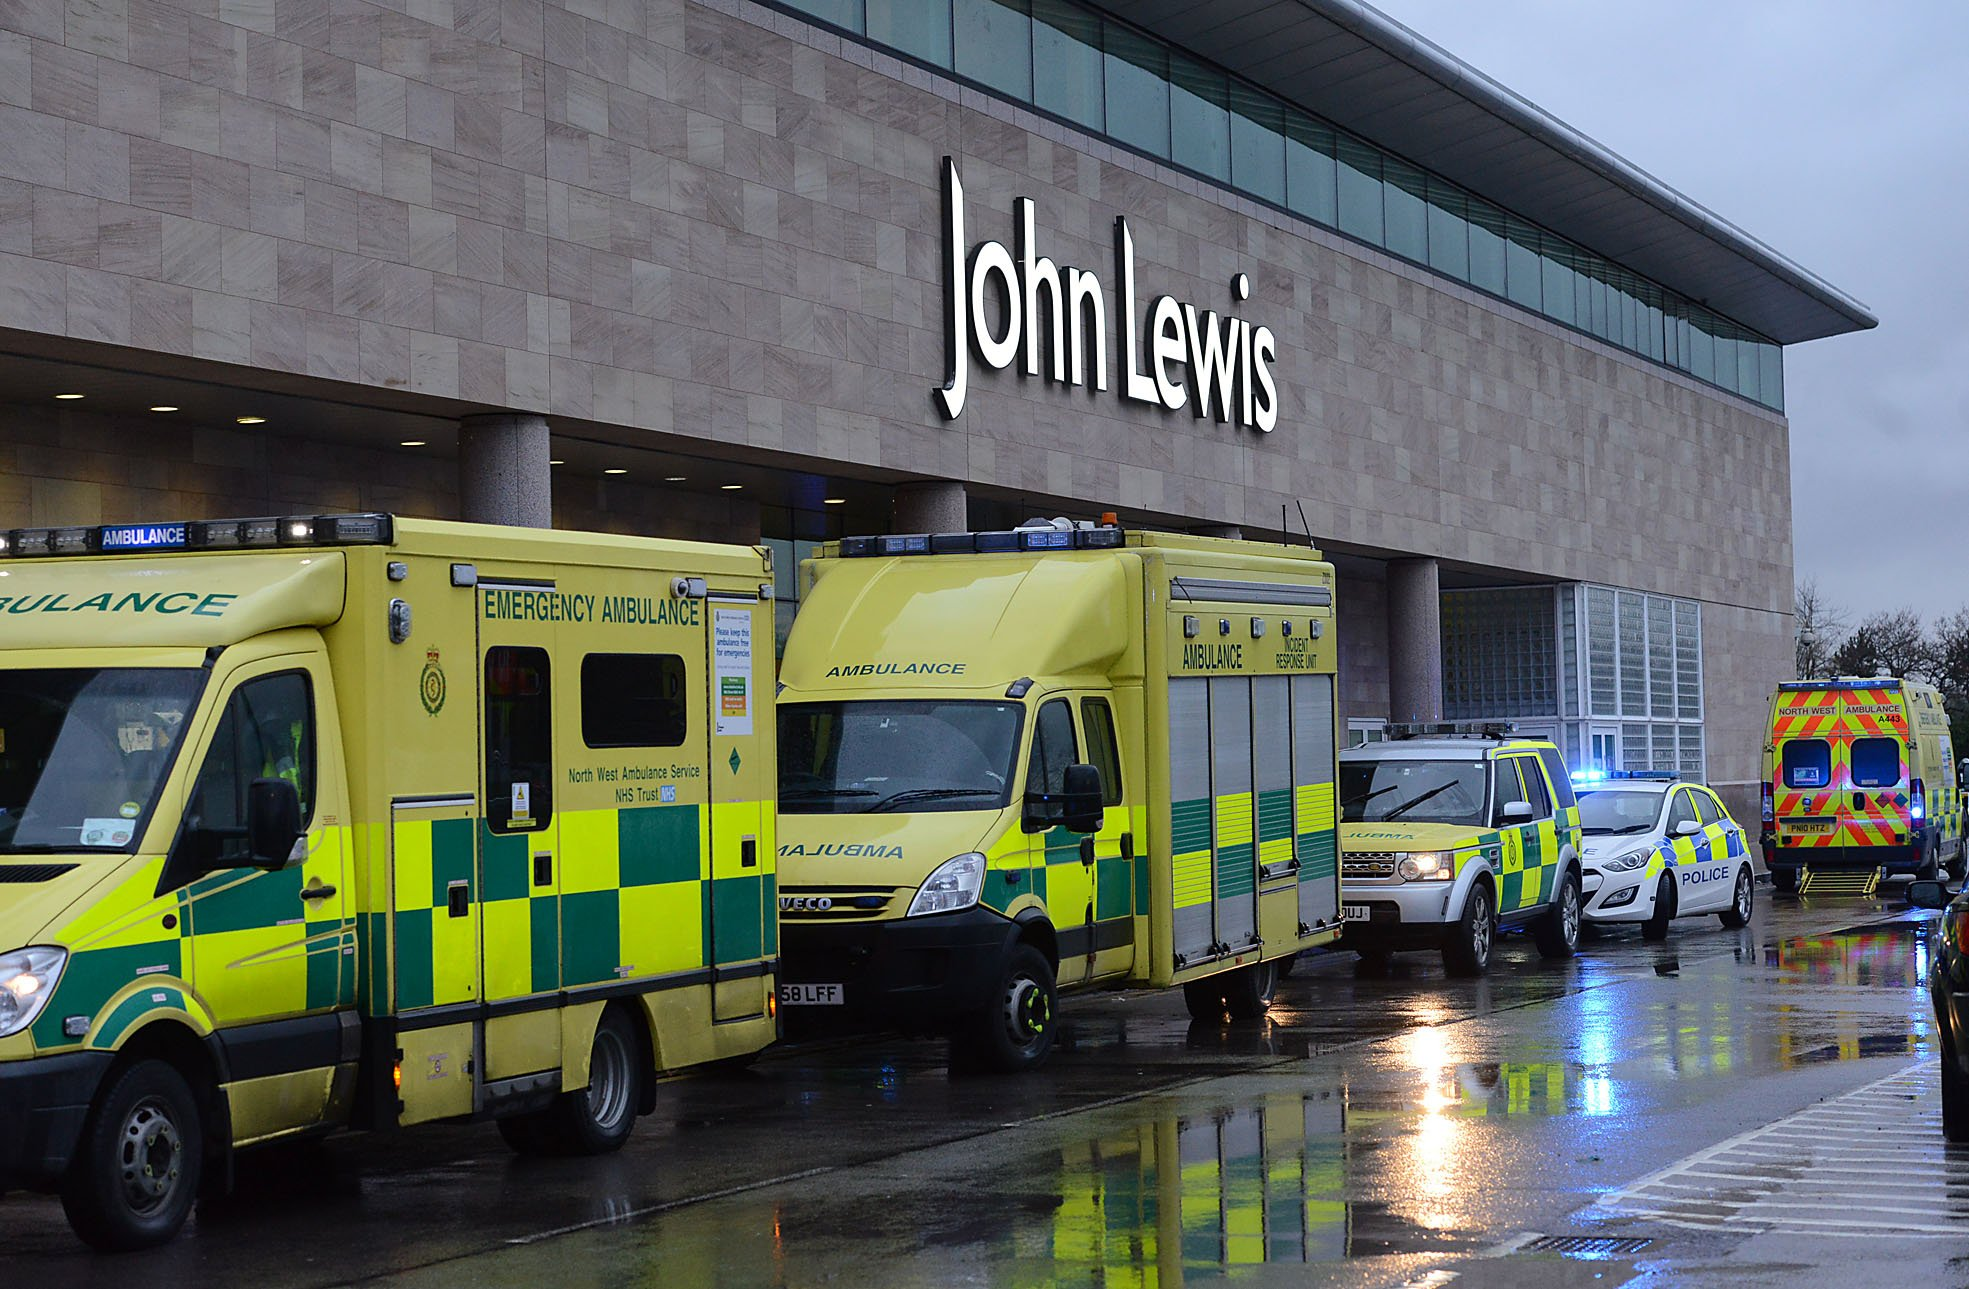 Incident scene at John Lewis Cheadle . Paramedics and Air Ambulance . 08 February . 2016 . Picture by Matt RatcliffennThere is video in Google Drive called ' John Lewis Incident '